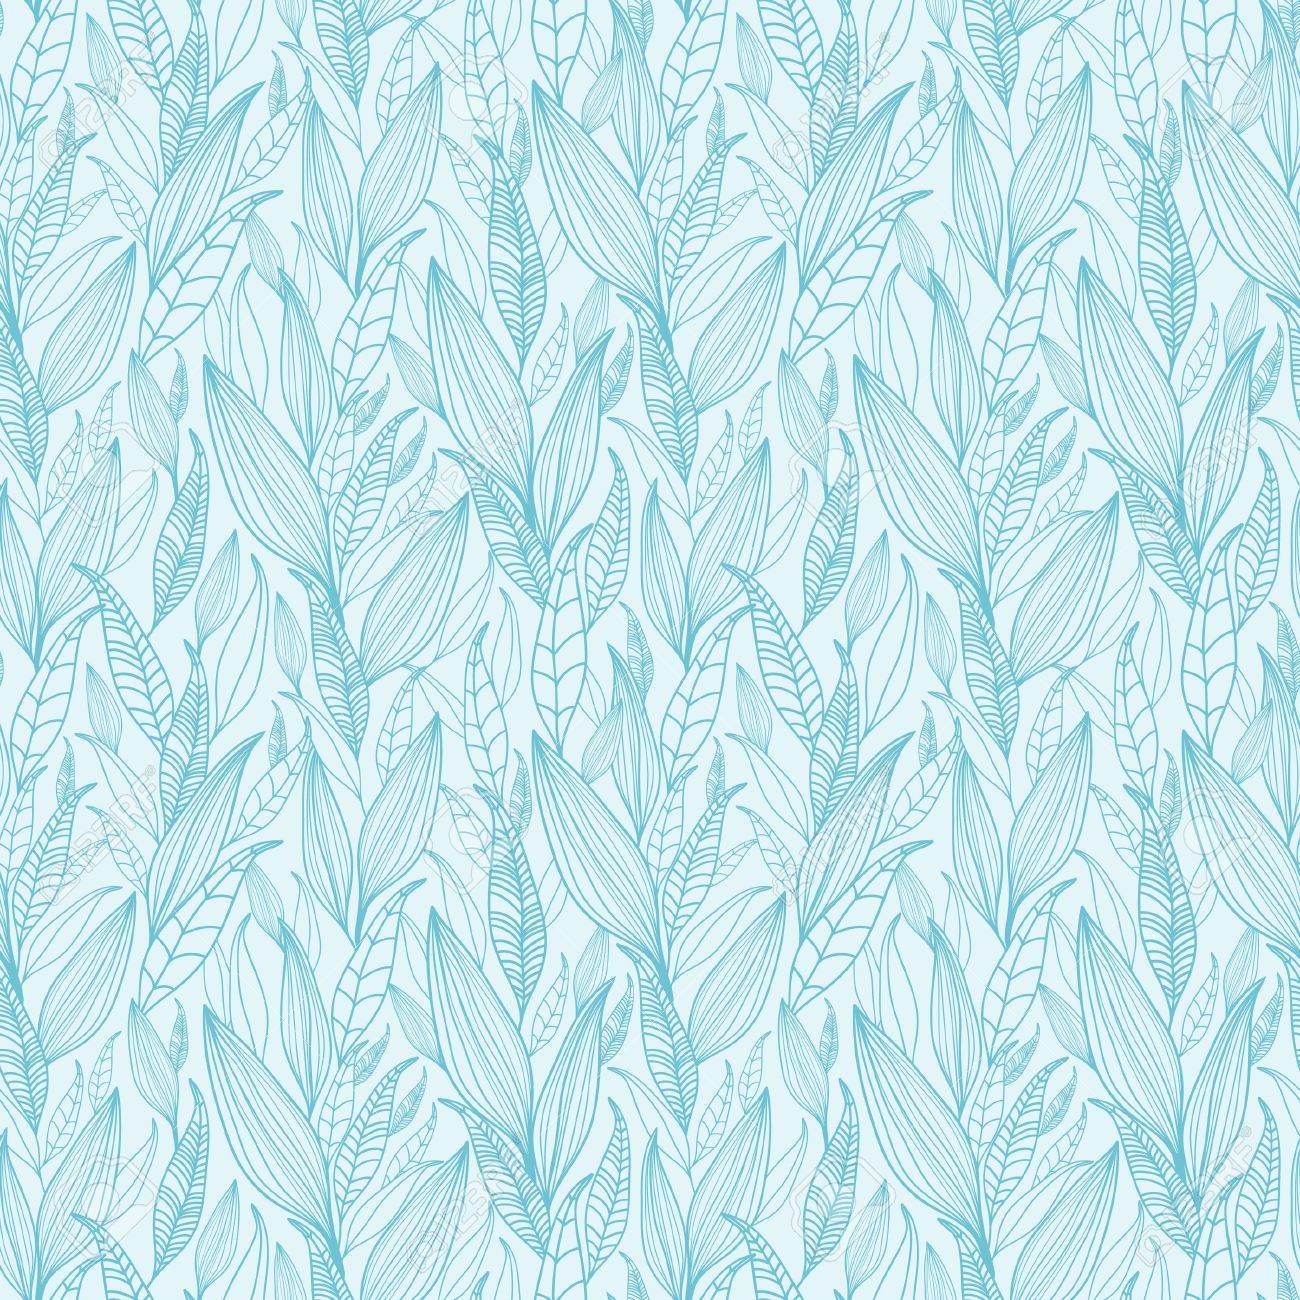 Blue Line Art Leaves Seamless Pattern Background Stock Vector - 16356457